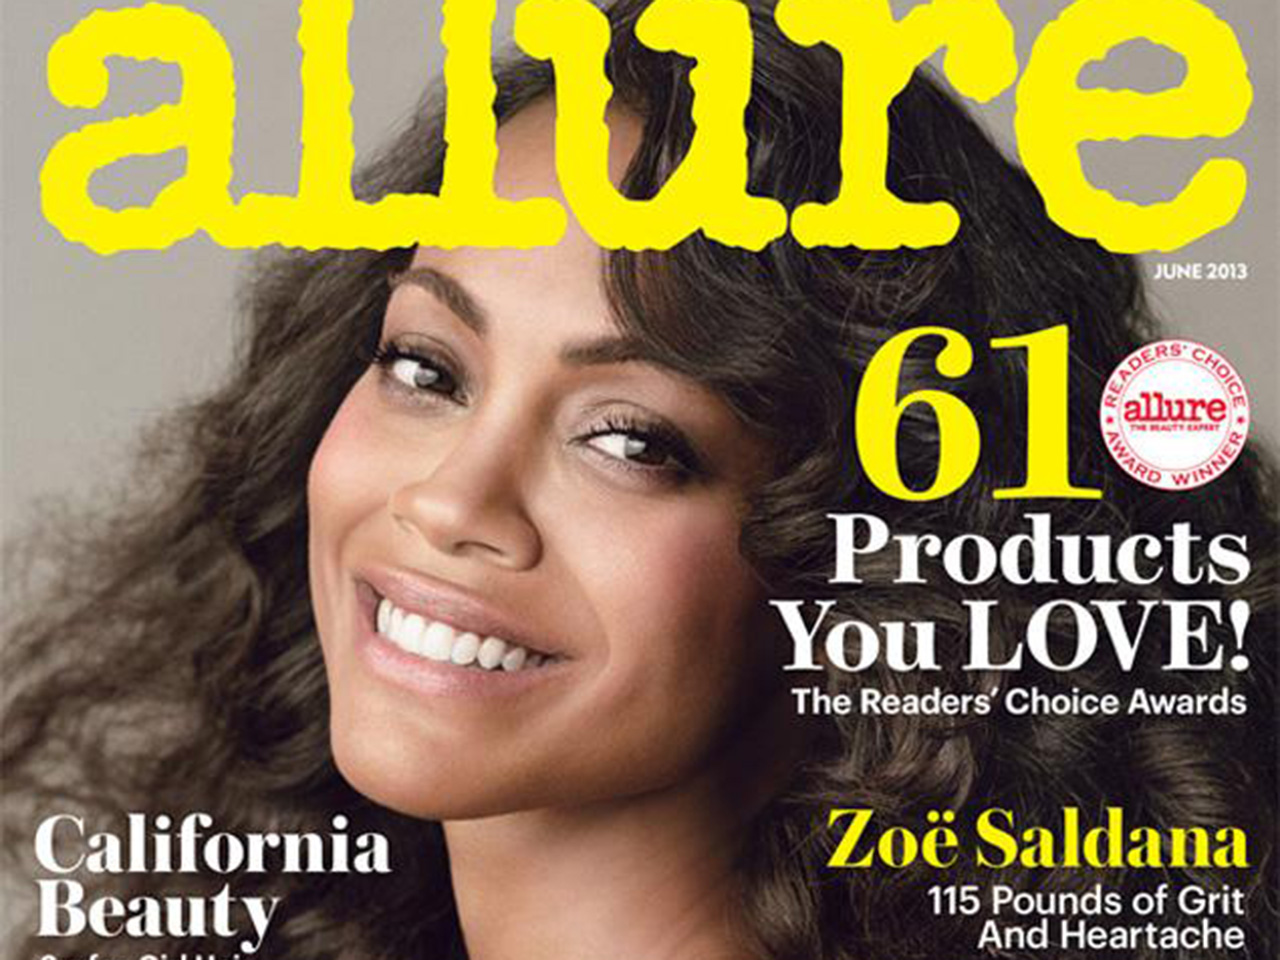 Zoe Saldana's Weight Revealed on New Allure Cover, Poses Naked InsideMag